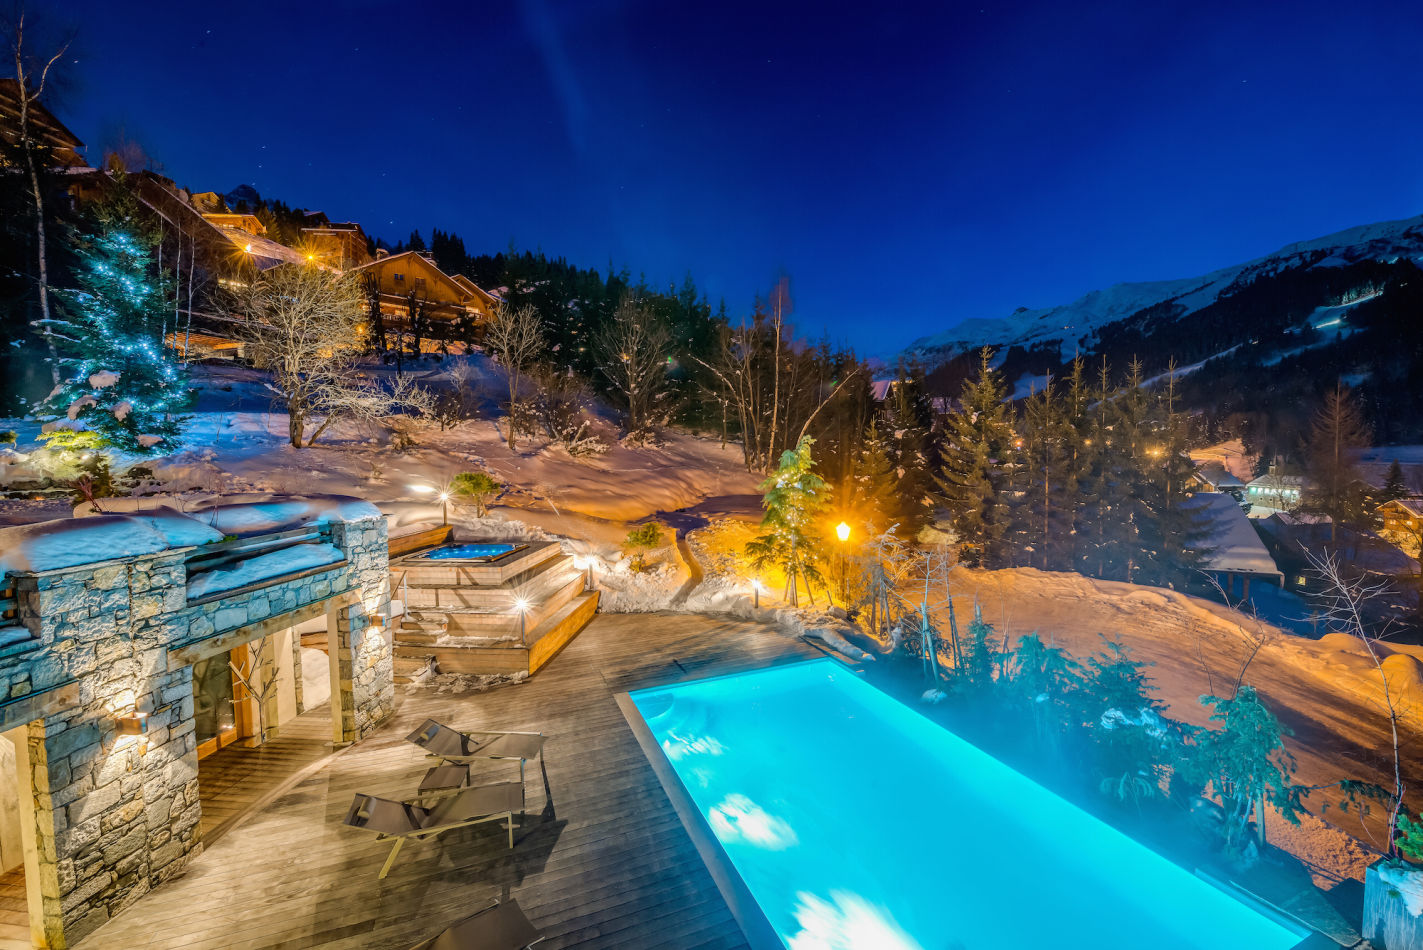 mt-exterior-pool-night